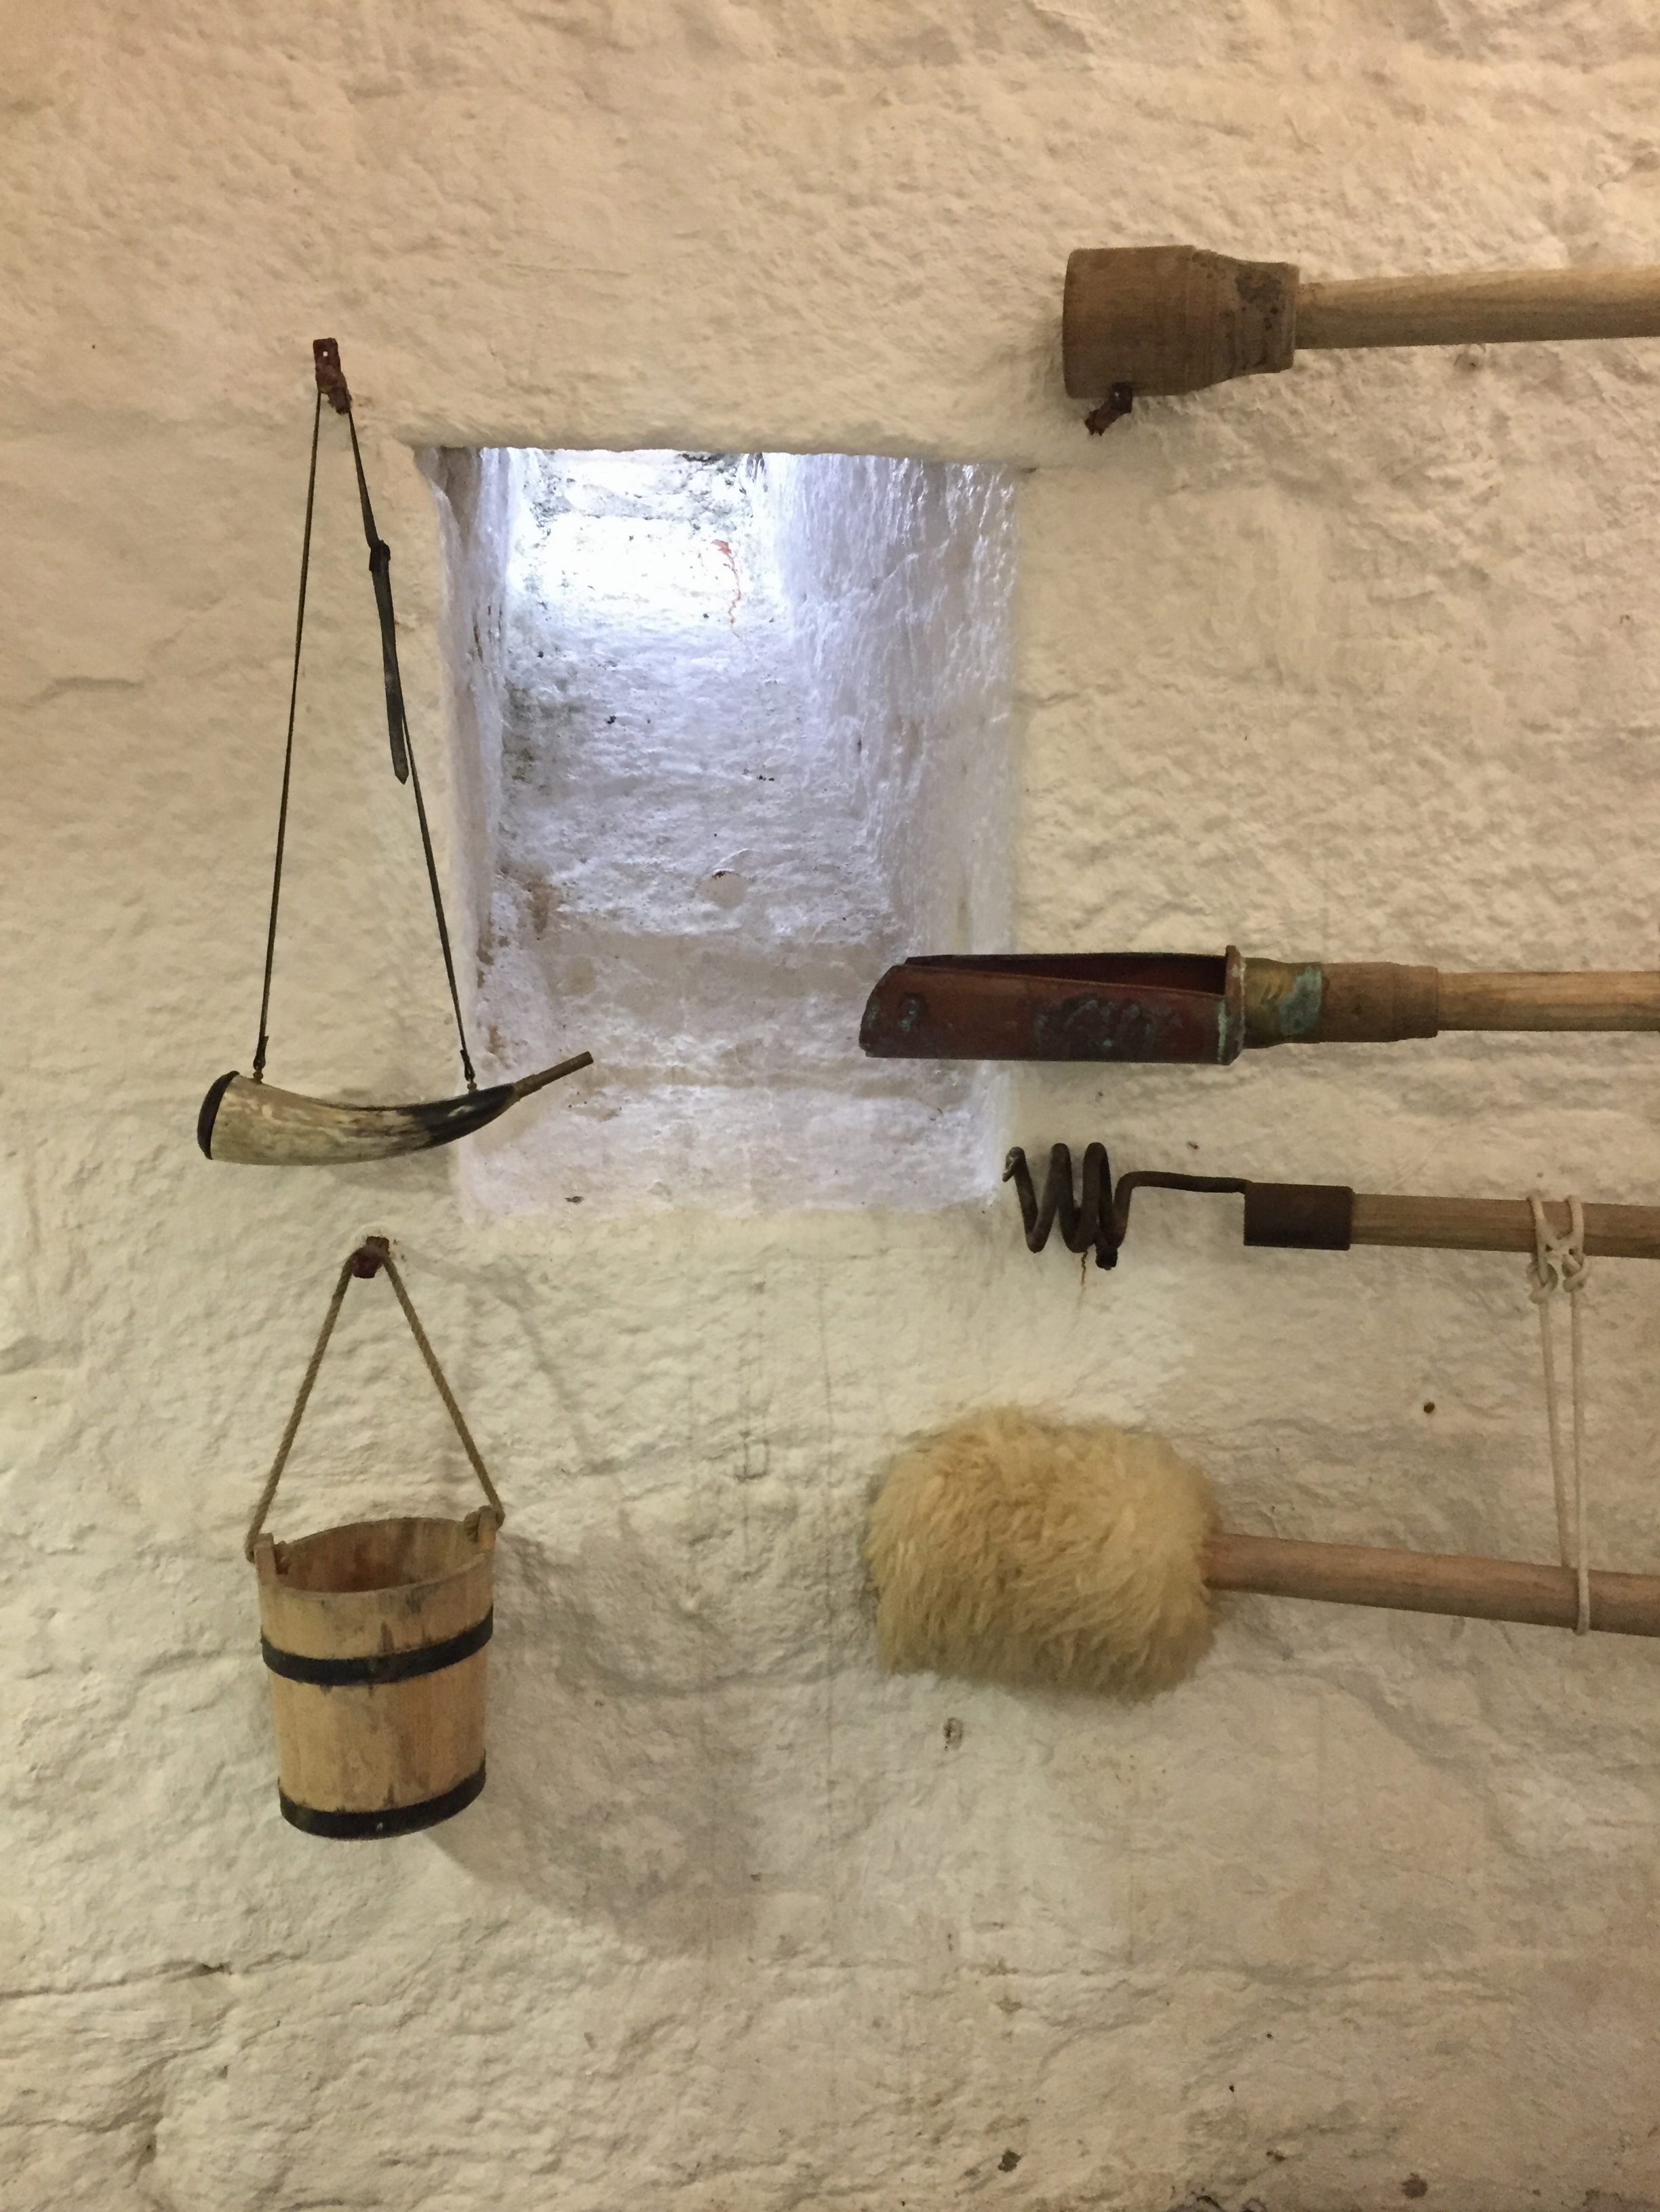 Tools for loading of canon